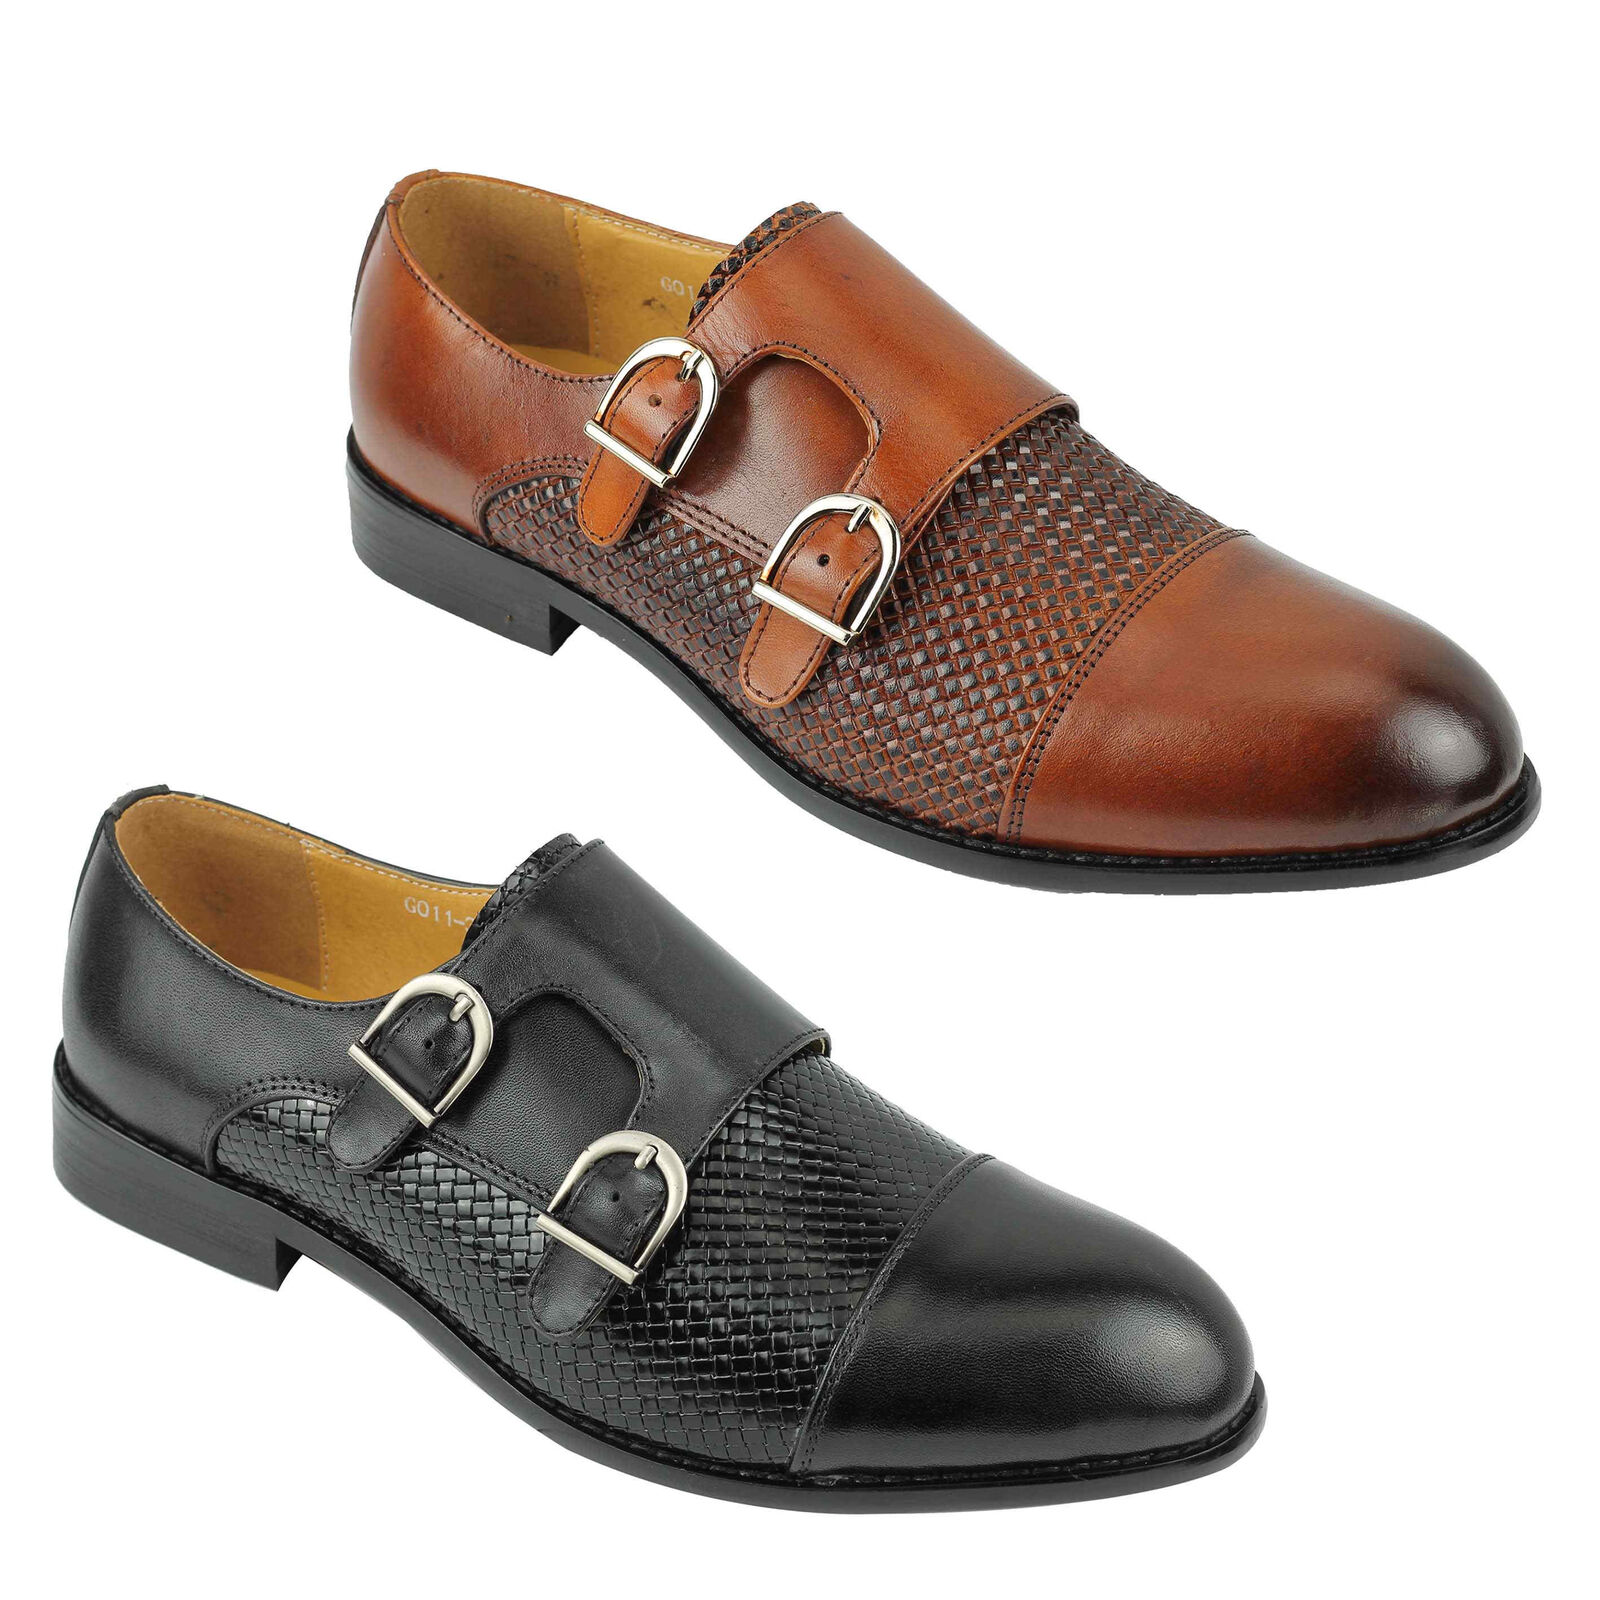 New Mens Black Brown Brown Brown Real Leather Vintage Smart Formal Wedding Dress Monk shoes 8d2510